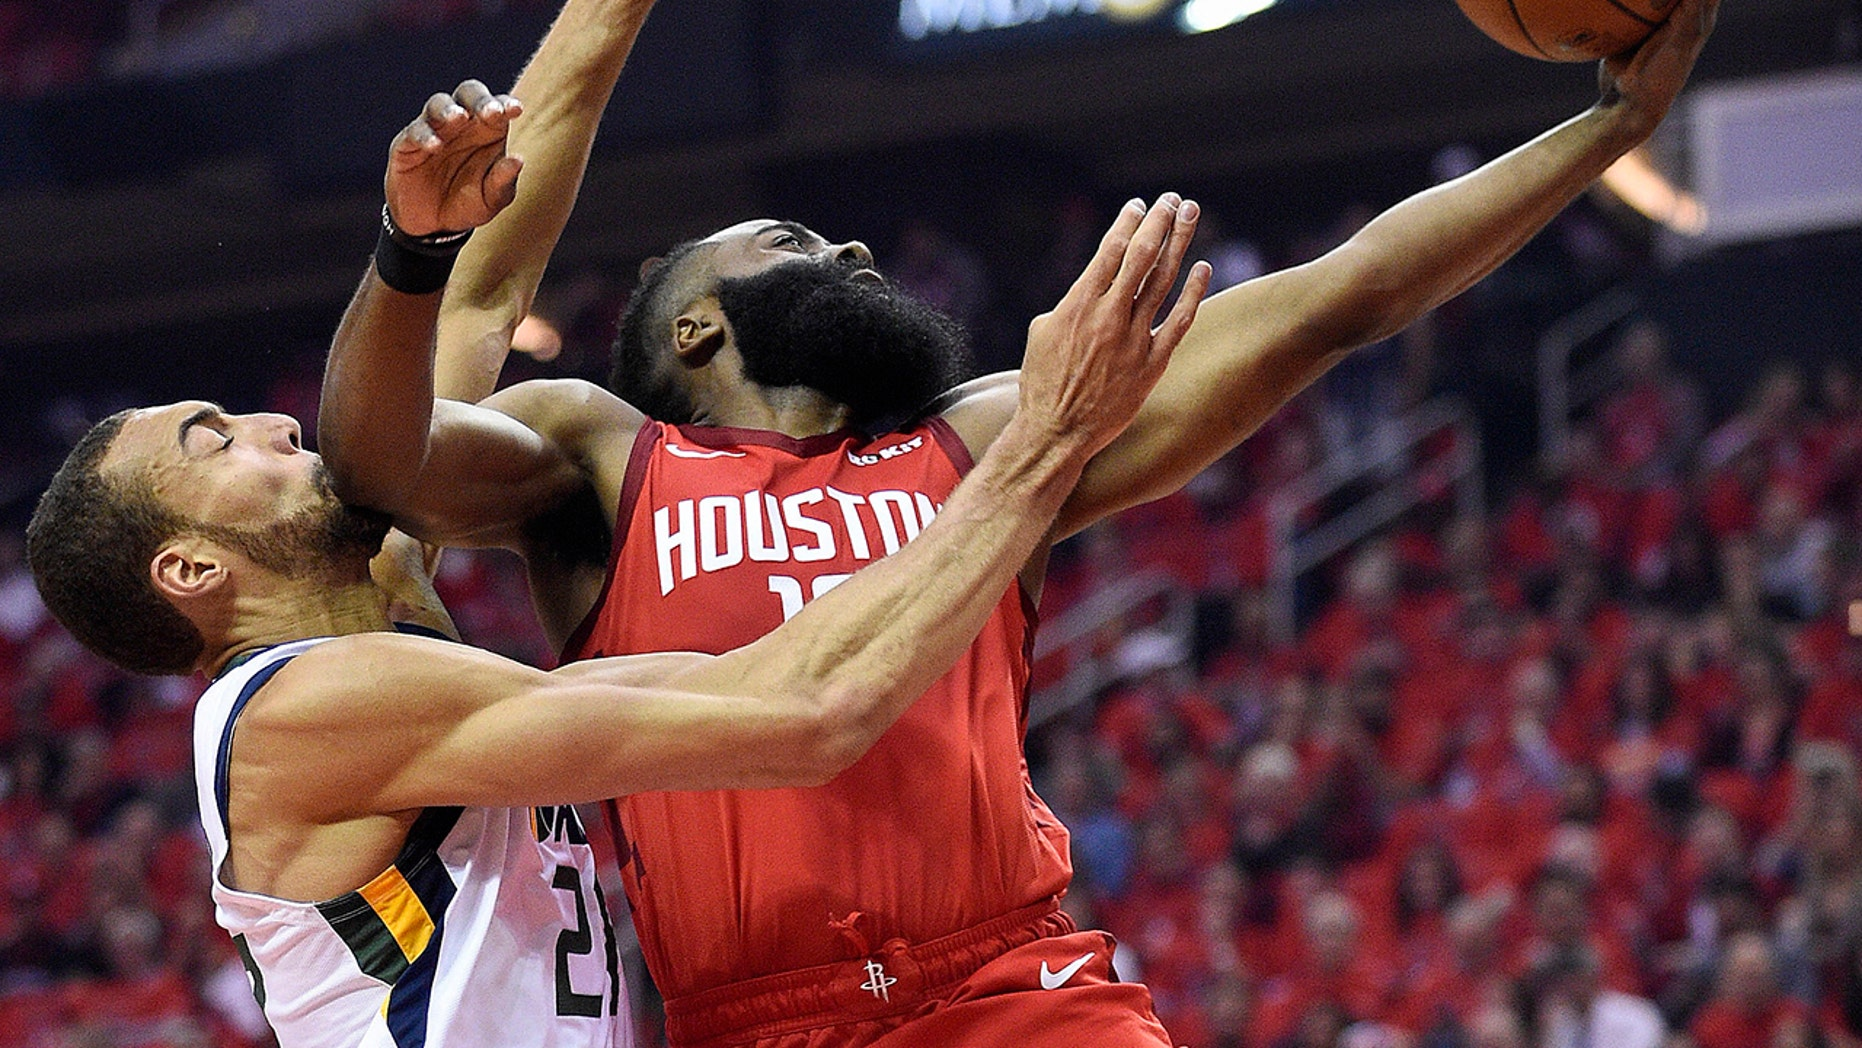 Houston Rockets ensure James Harden, right, drives to a basket as Utah Jazz core Rudy Gobert defends during a initial half of Game 1 of an NBA basketball first-round playoff series, Sunday, Apr 14, 2019, in Houston. (AP Photo/Eric Christian Smith)